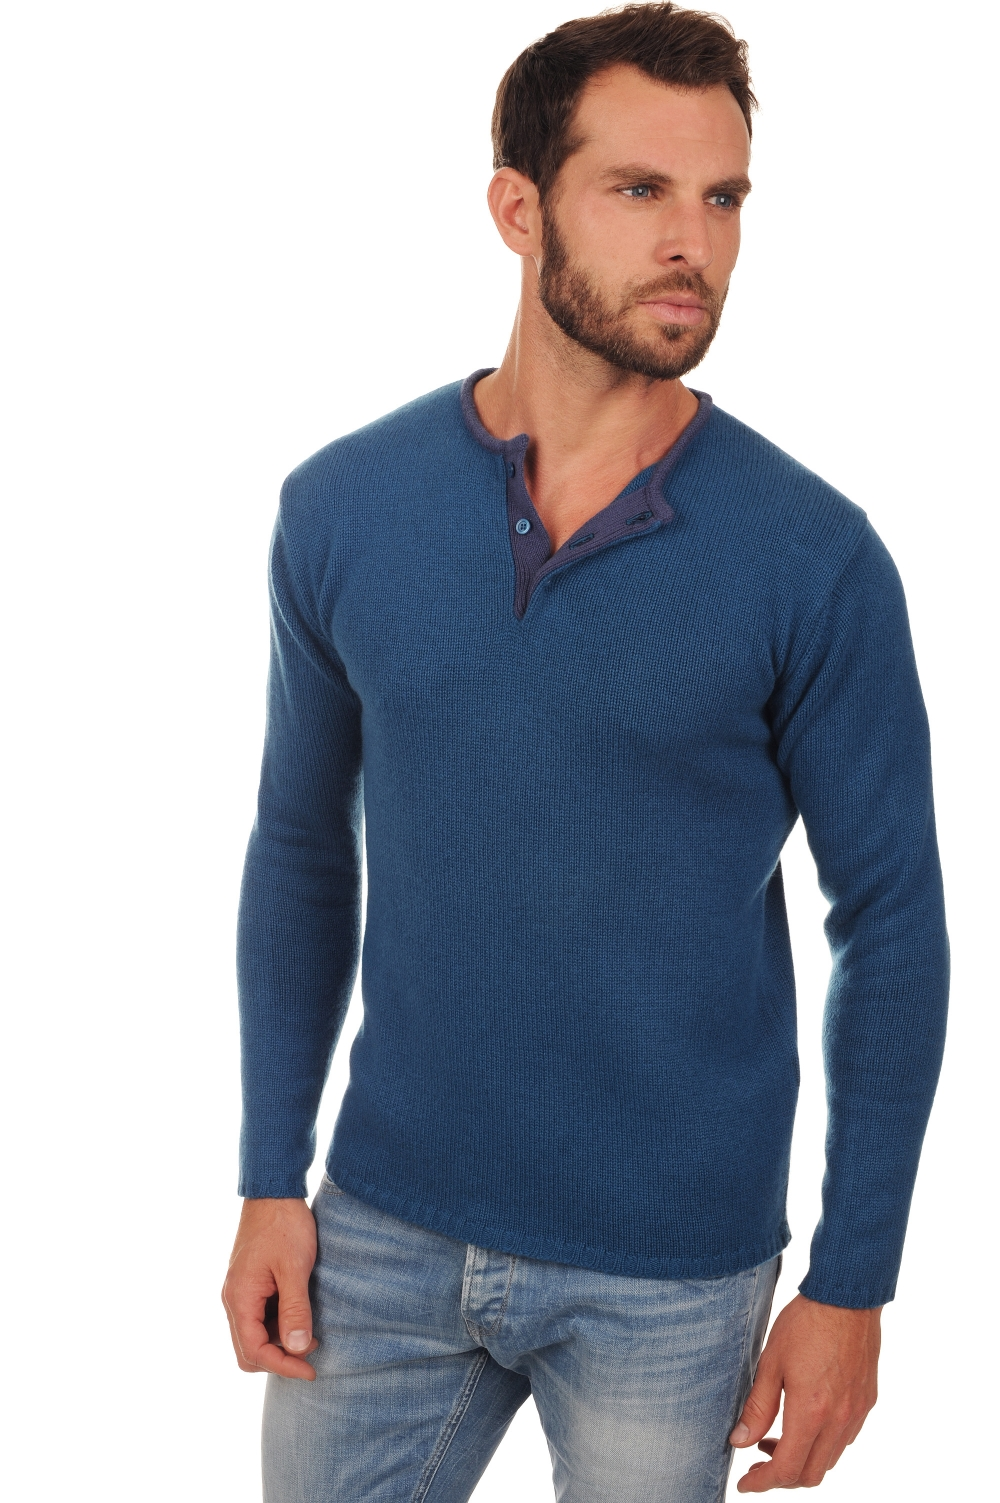 homme pull col rond cilian bleu canard mure 2xl